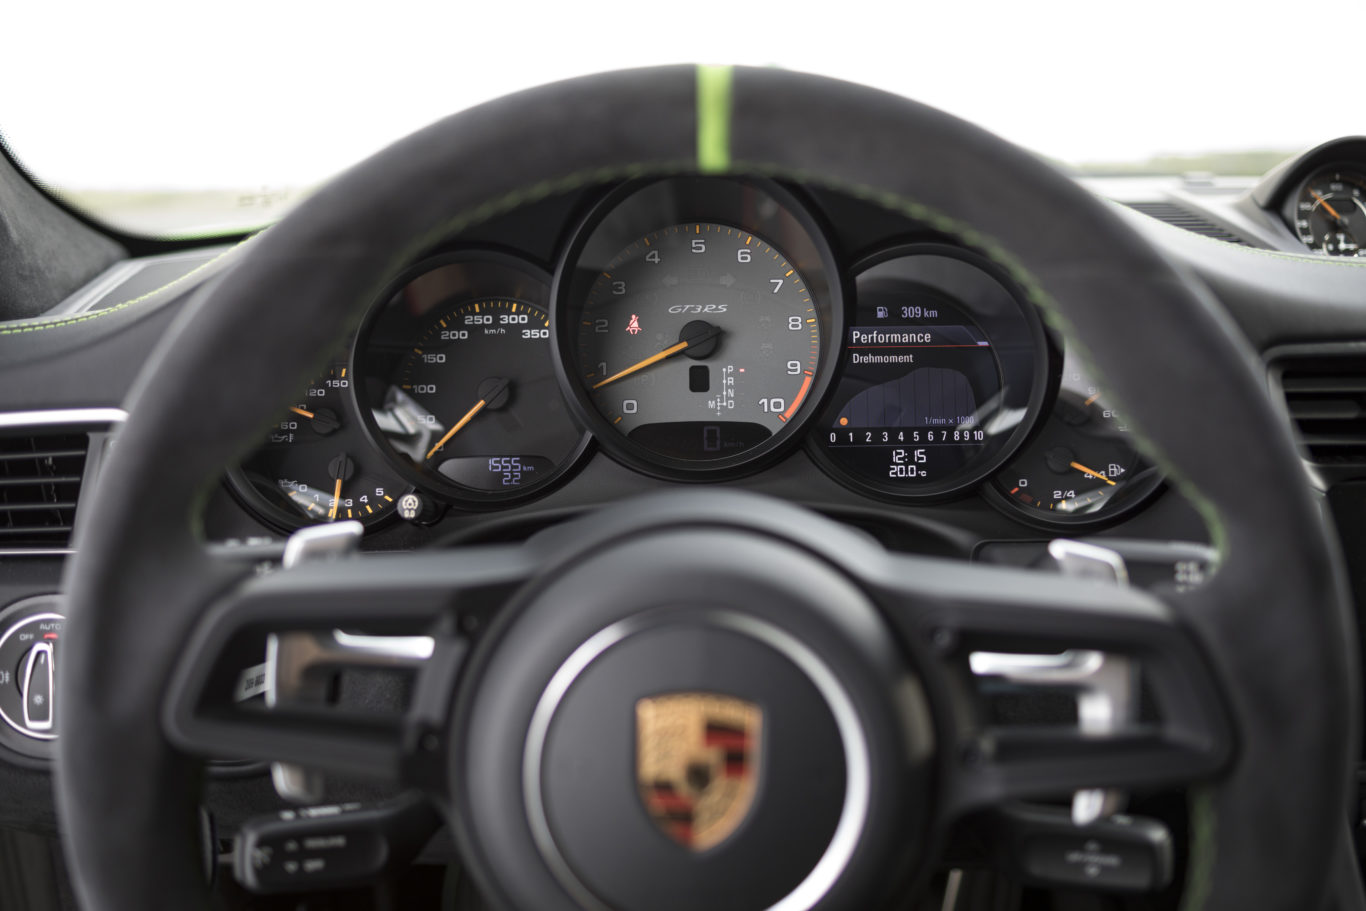 The Porsche's cabin is exceptionally driver-focused